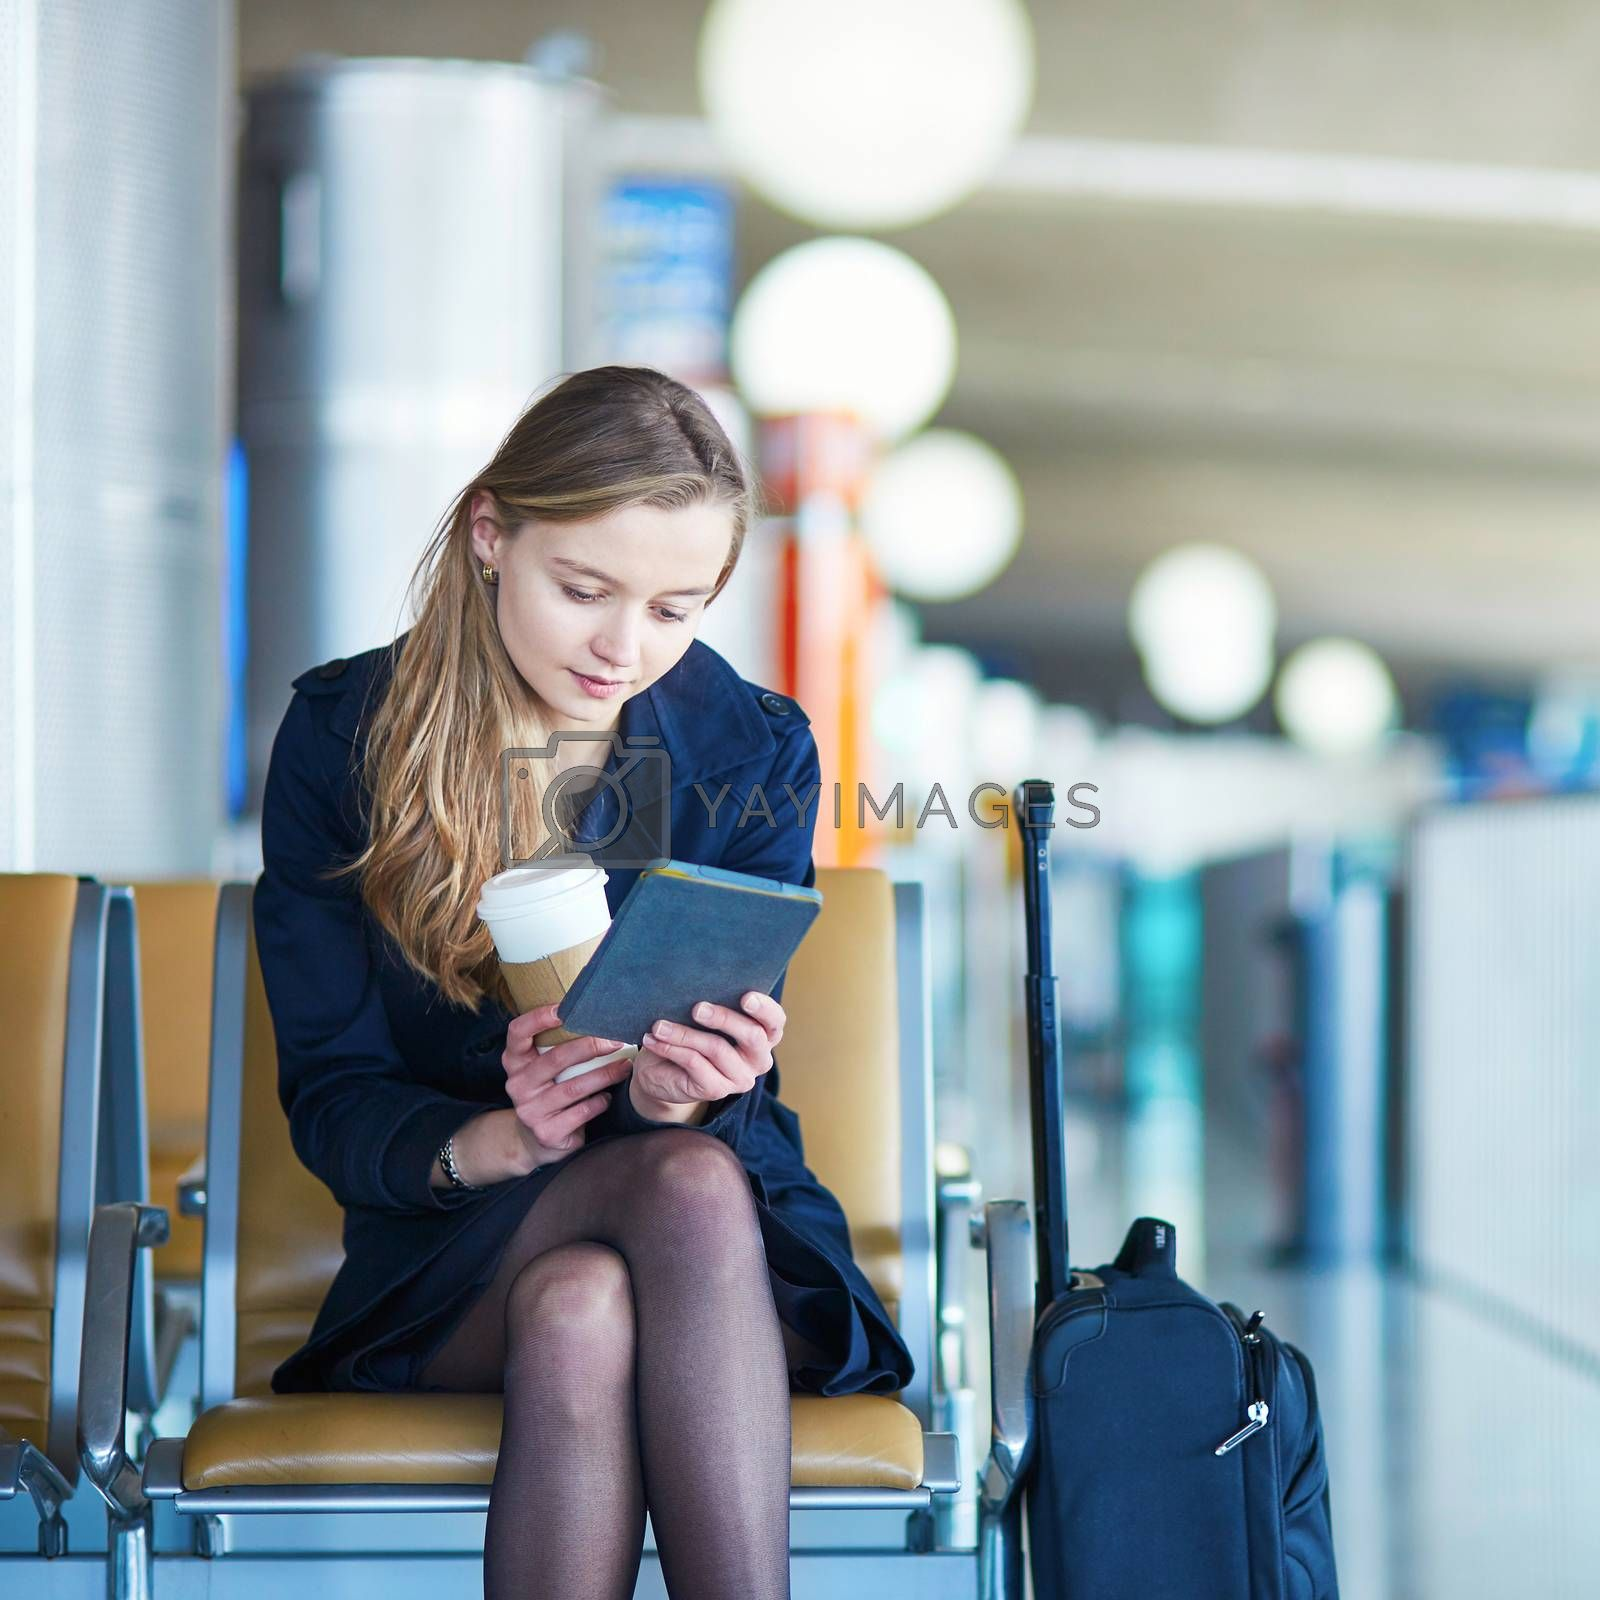 Young woman in international airport reading a book while waiting for her flight